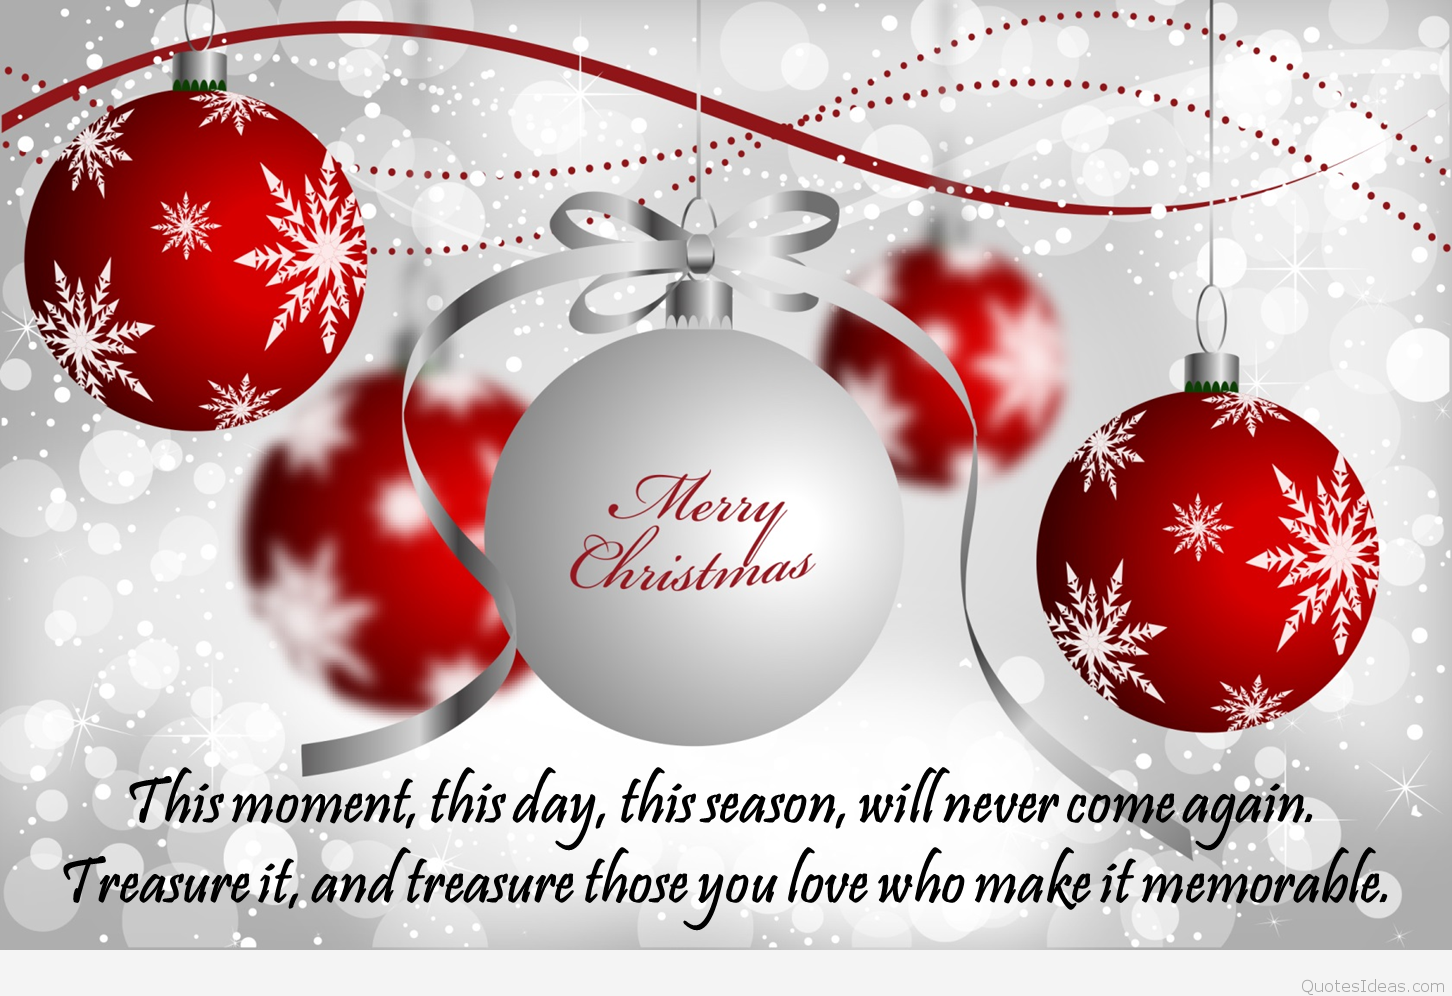 Merry Christmas Quotes Christmas wishes quotes